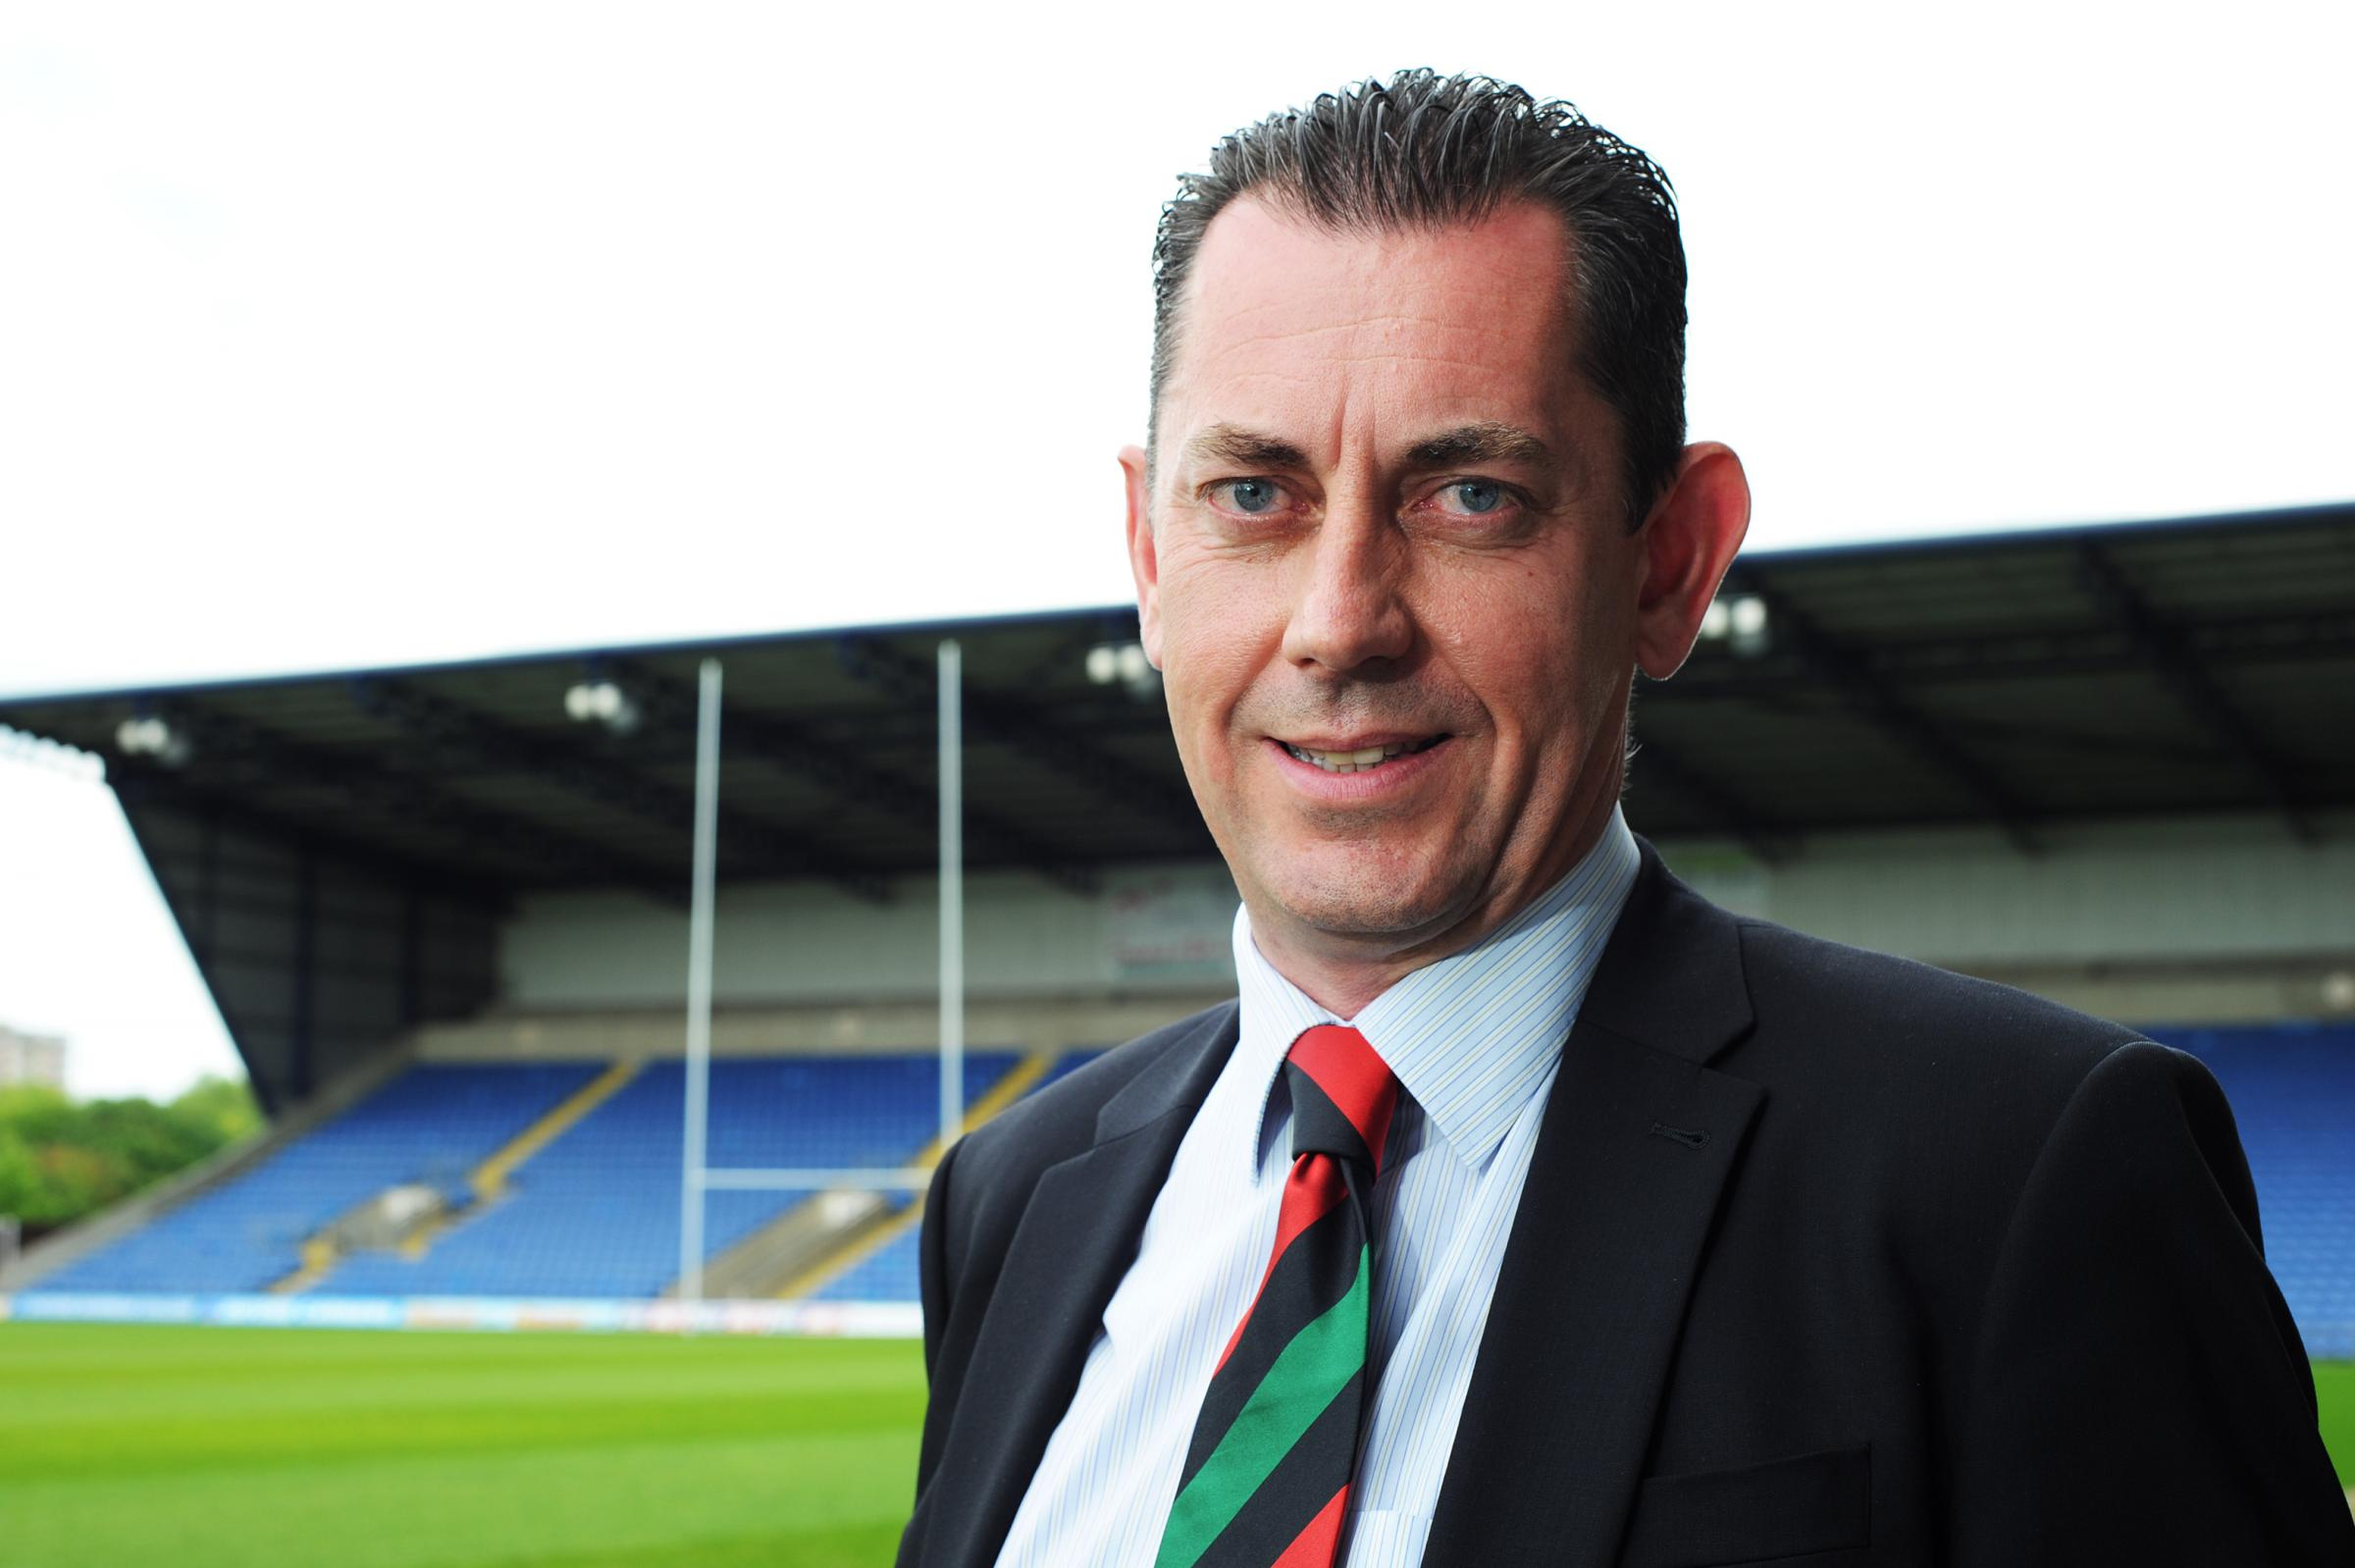 London Welsh chief executive Mike Stevens has left the club